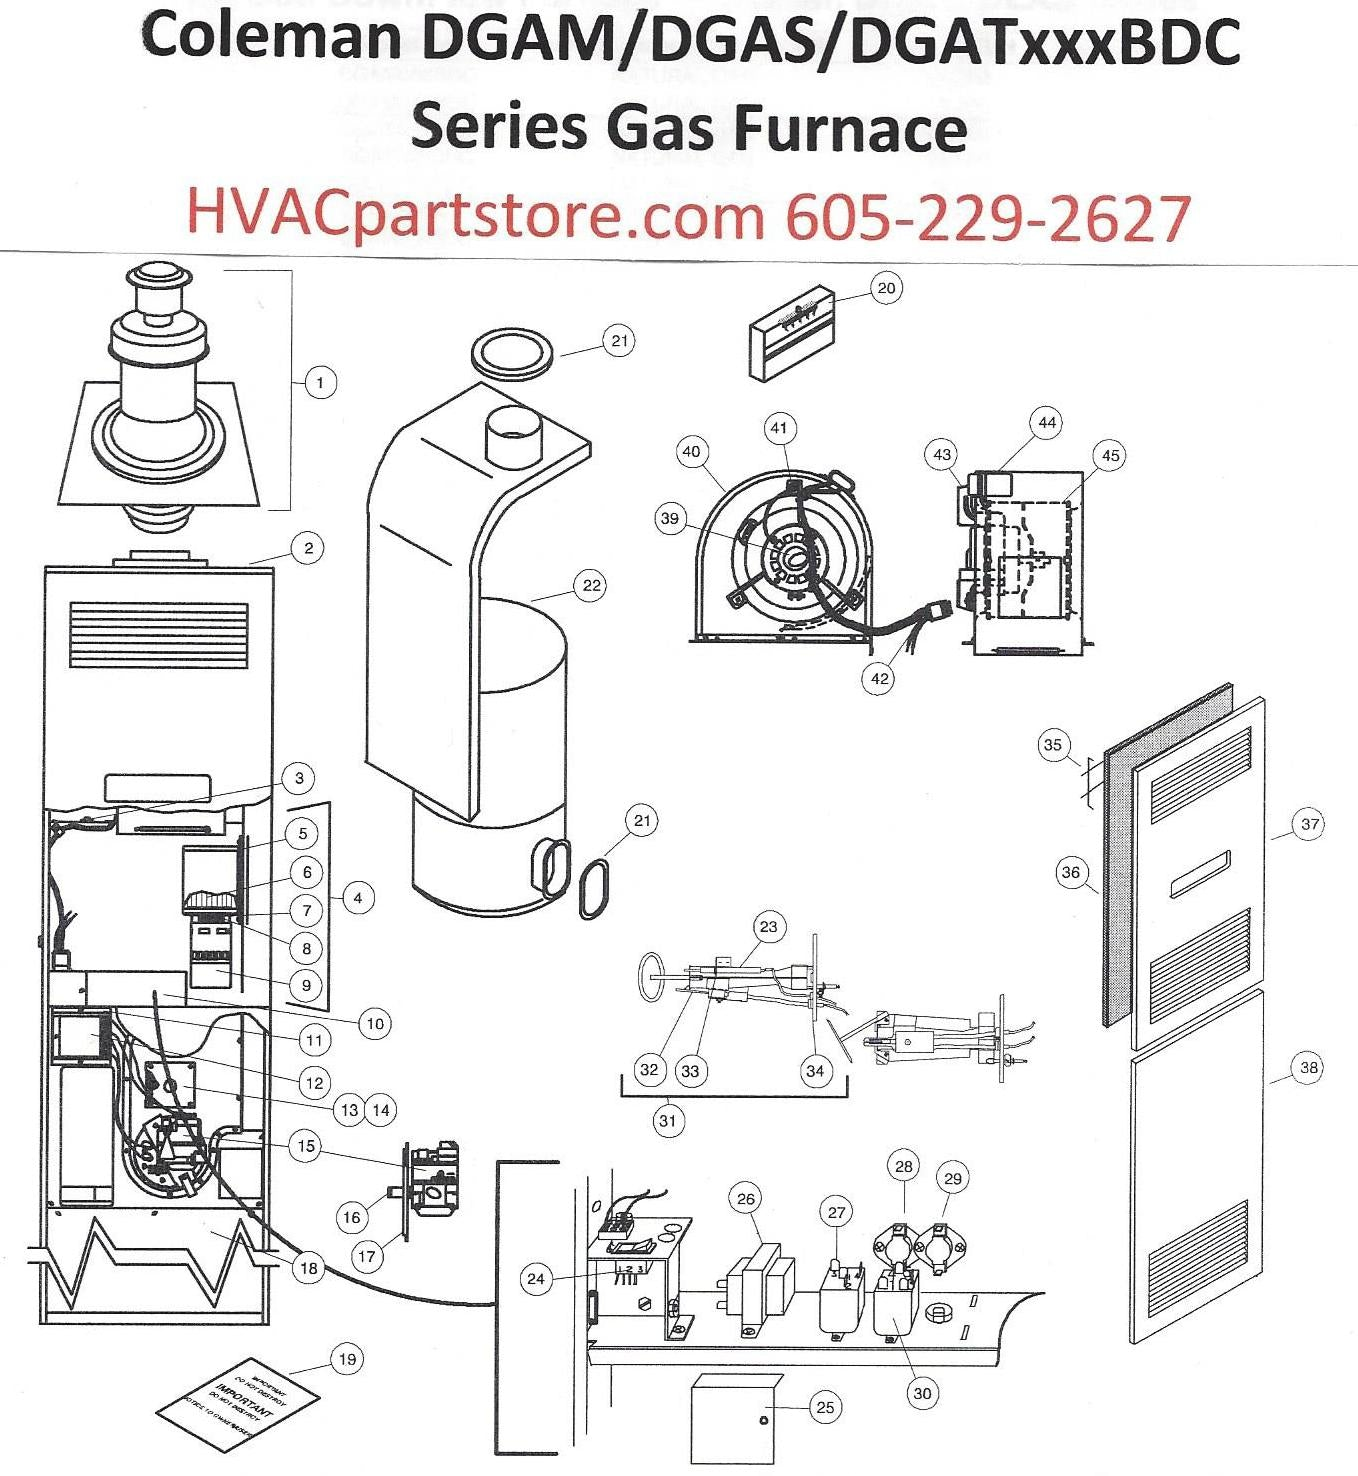 dgat056bdc coleman gas furnace parts hvacpartstore rv lp gas regulator propane furnace schematic #2